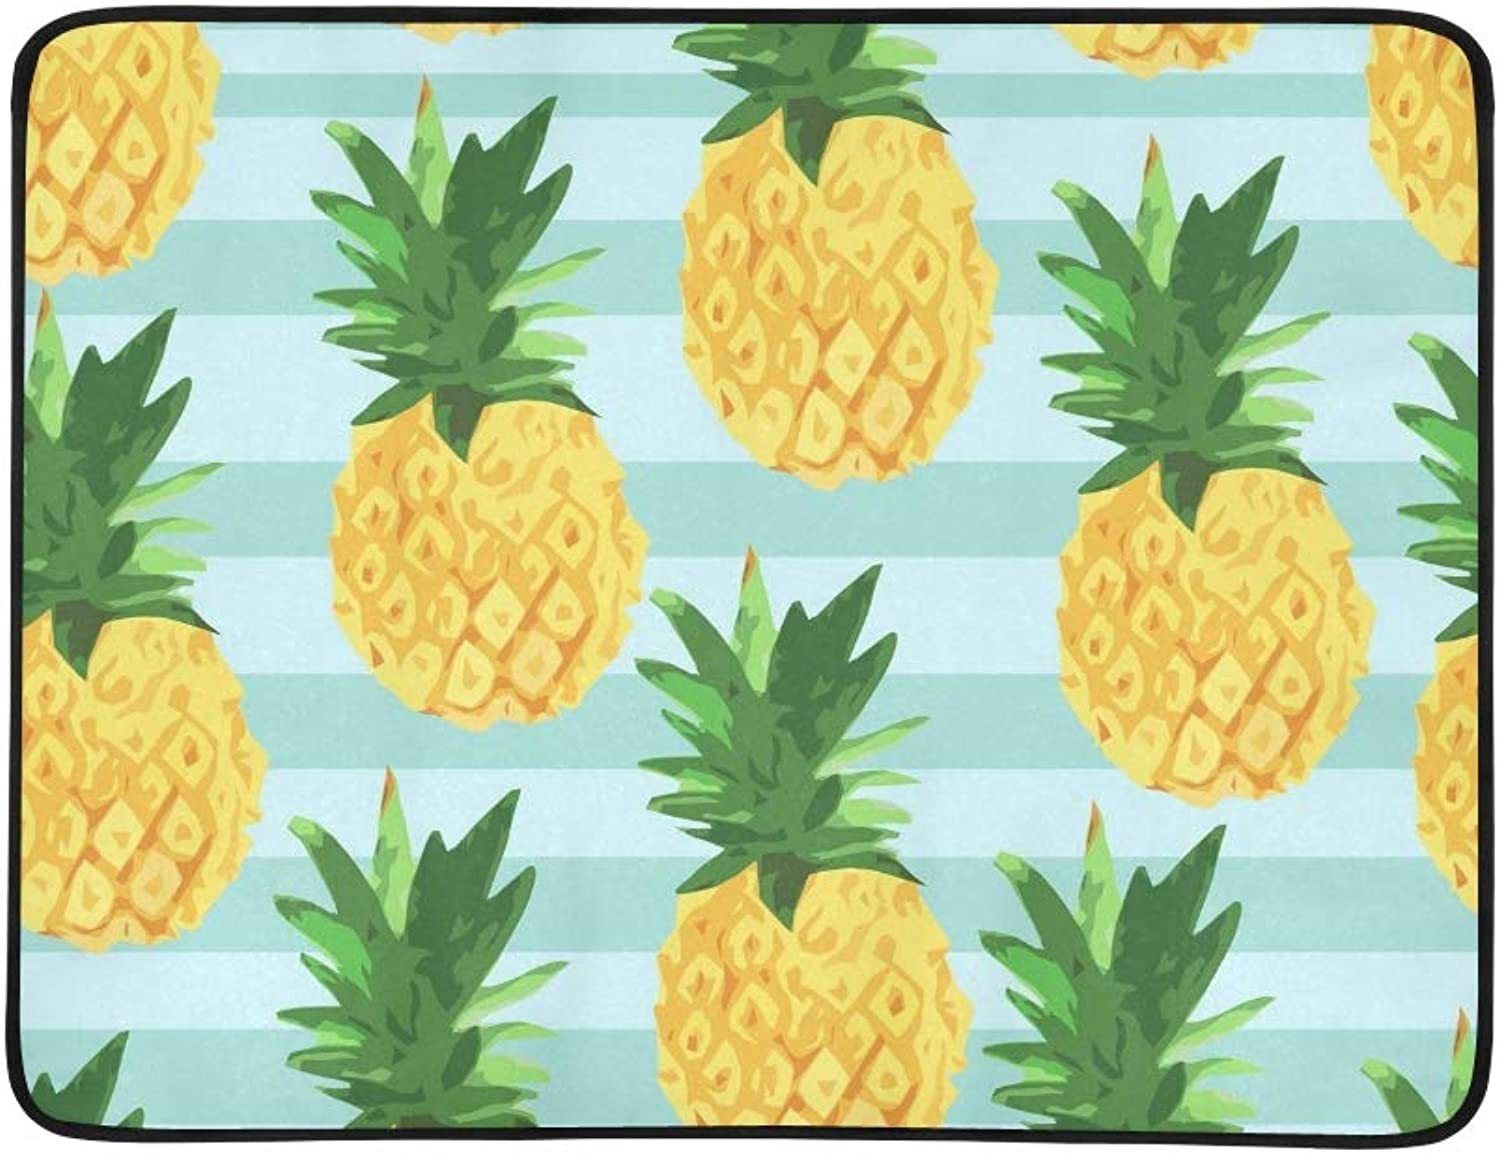 Pineapple Tropical Textile Print Portable and Foldable Blanket Mat 60x78 Inch Handy Mat for Camping Picnic Beach Indoor Outdoor Travel